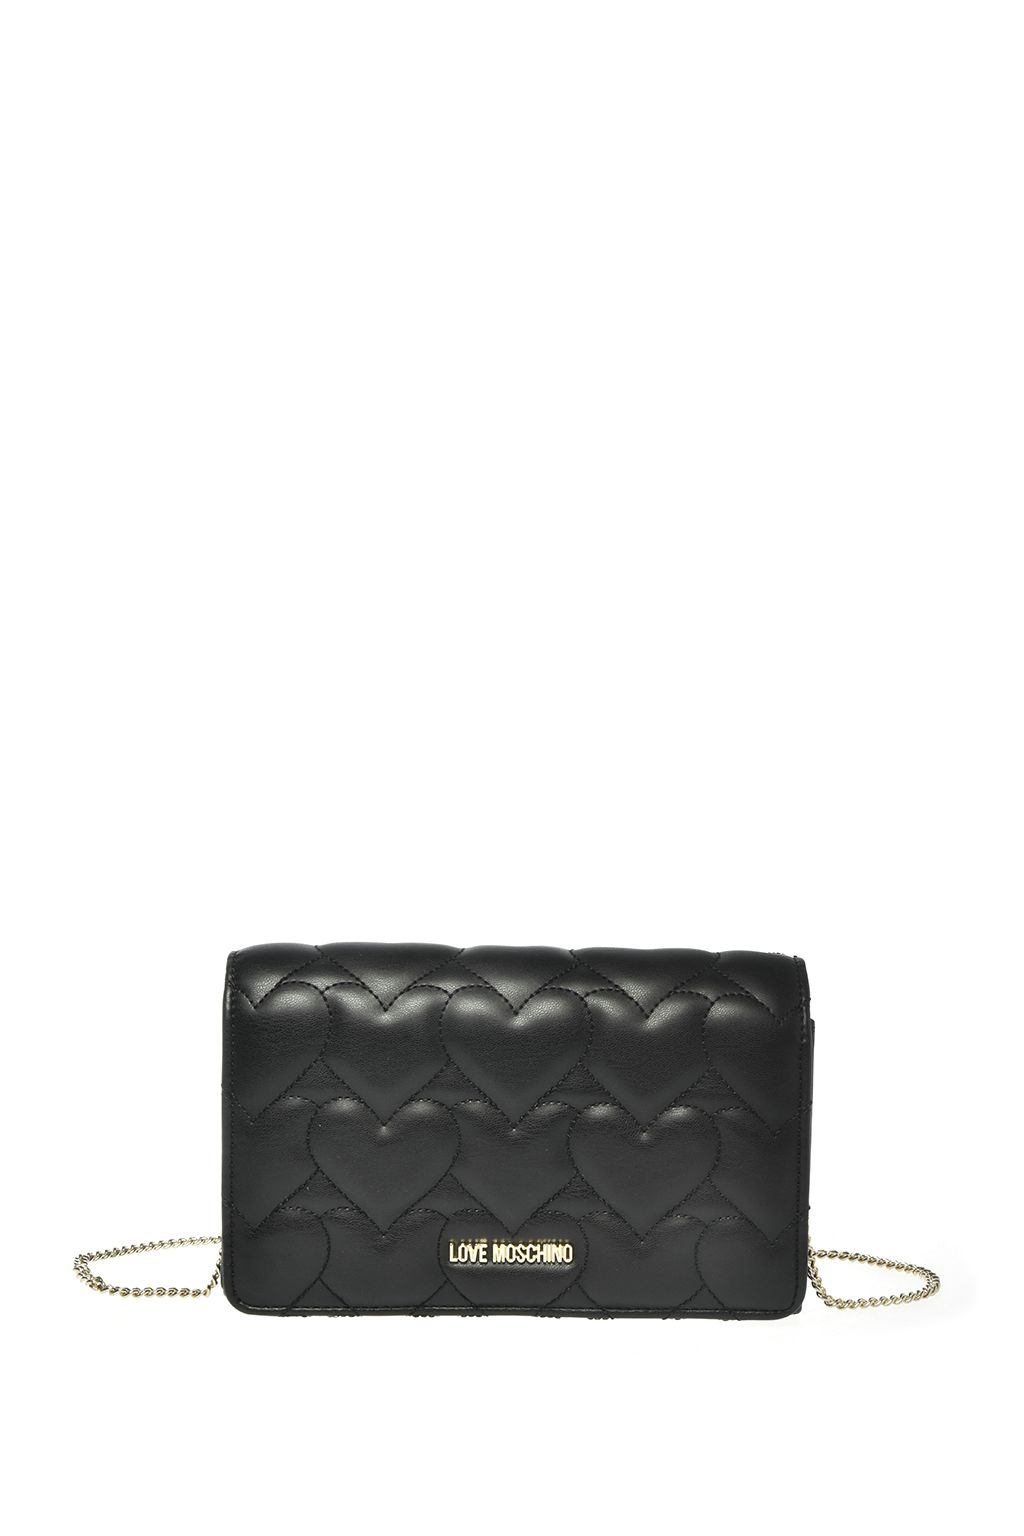 Clucht Love Moschino frontale